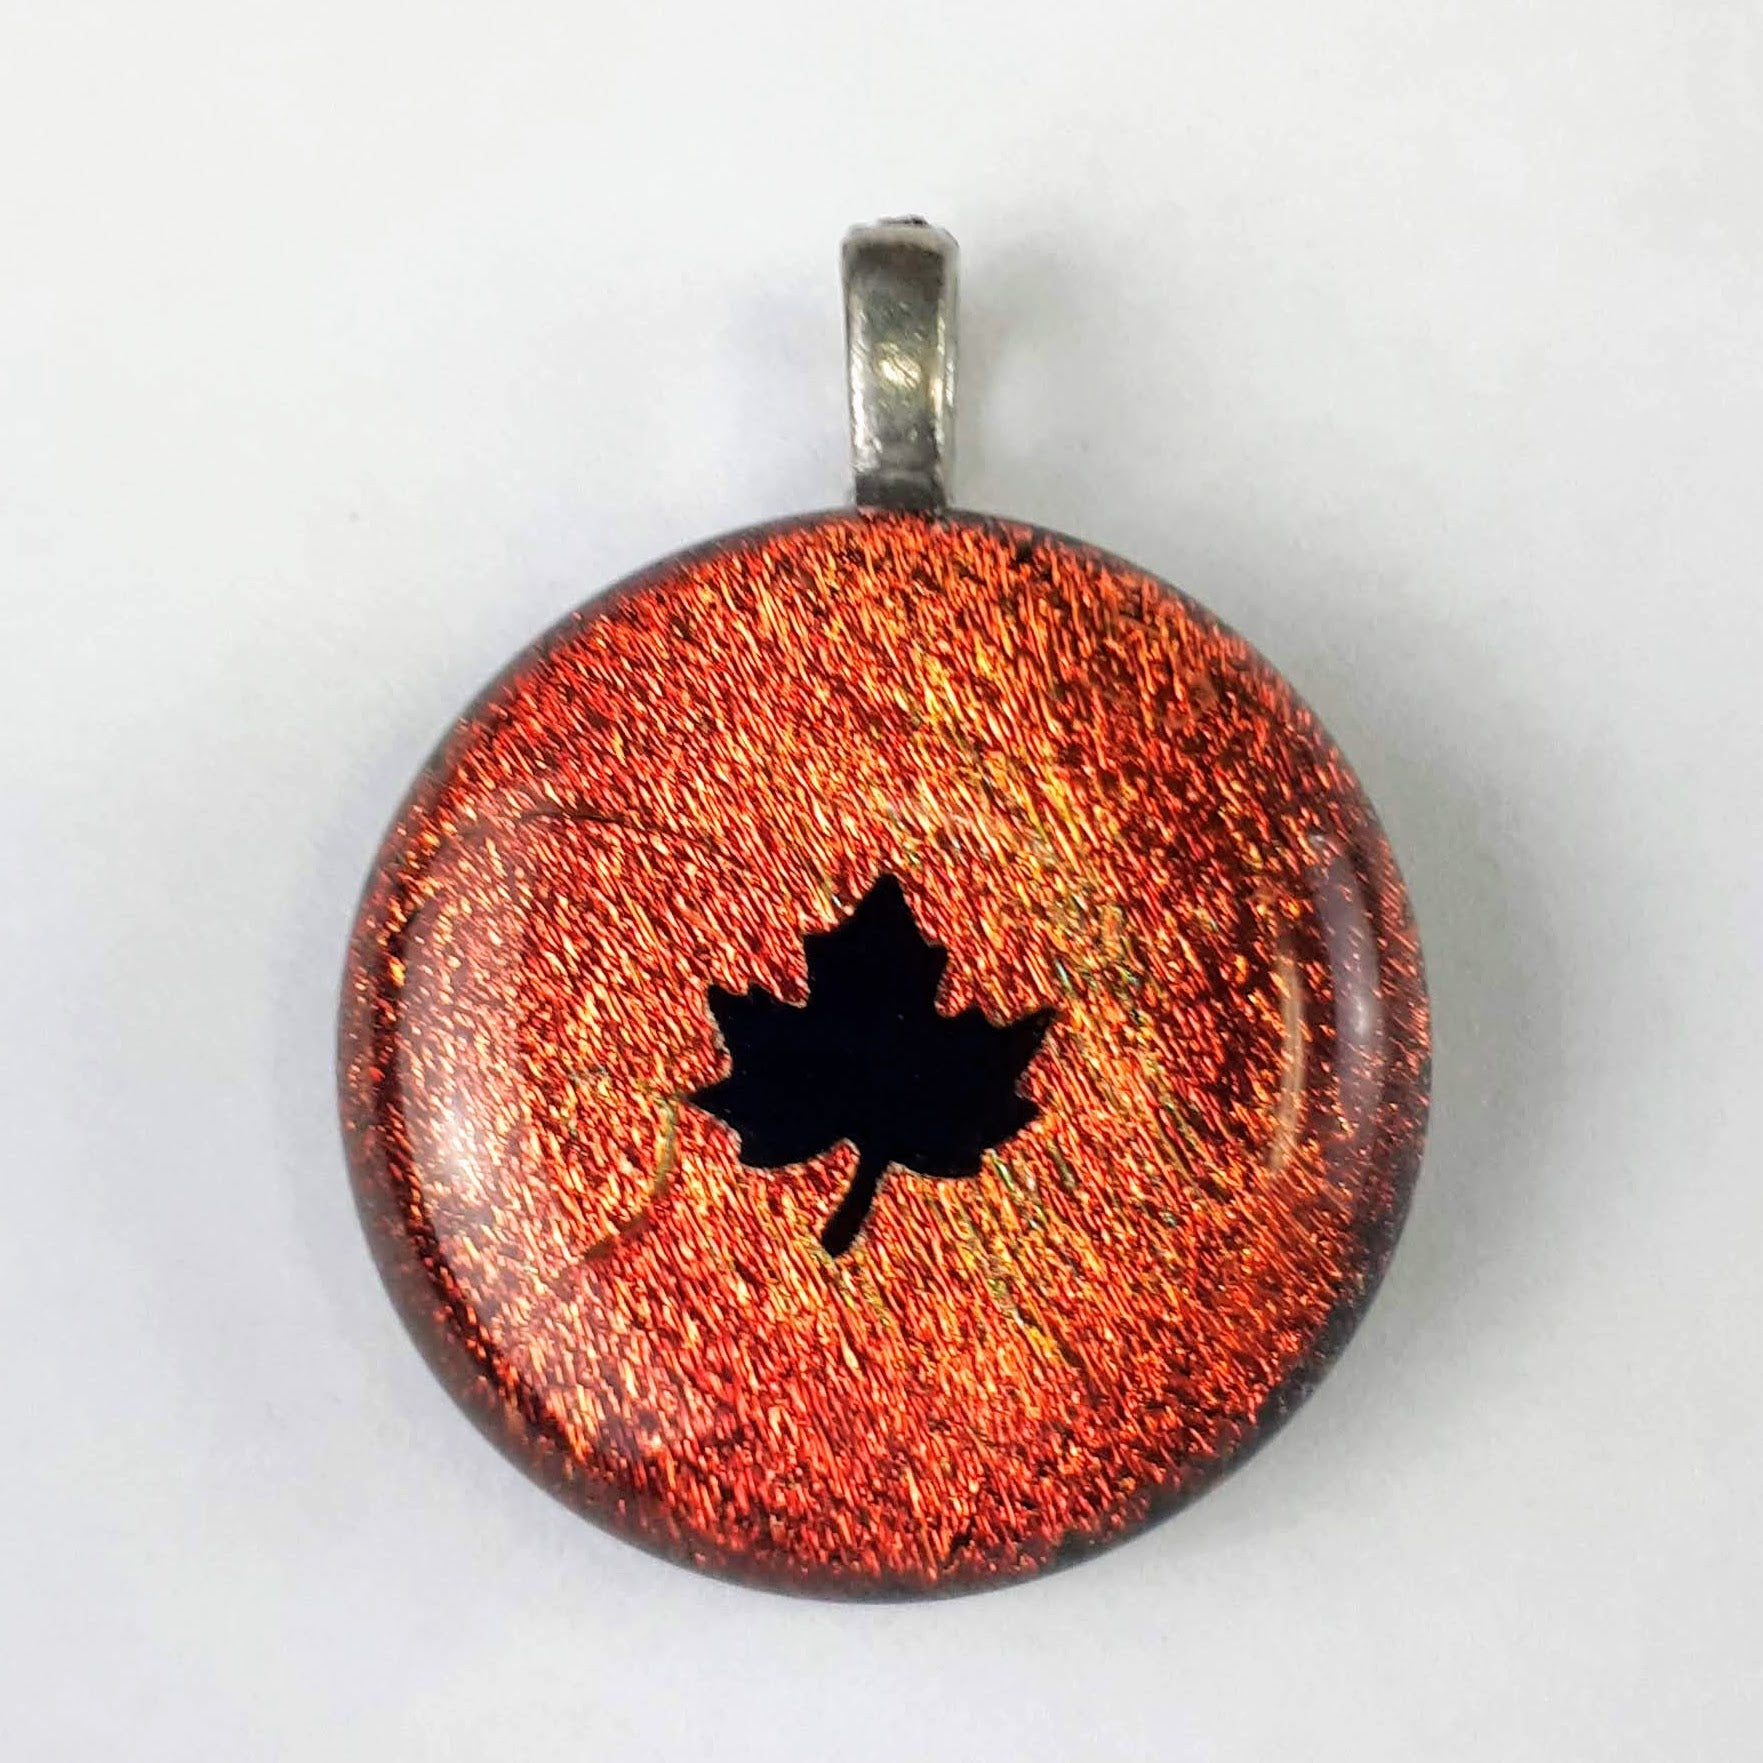 Sparkly orange and black maple leaf glass pendant on white background